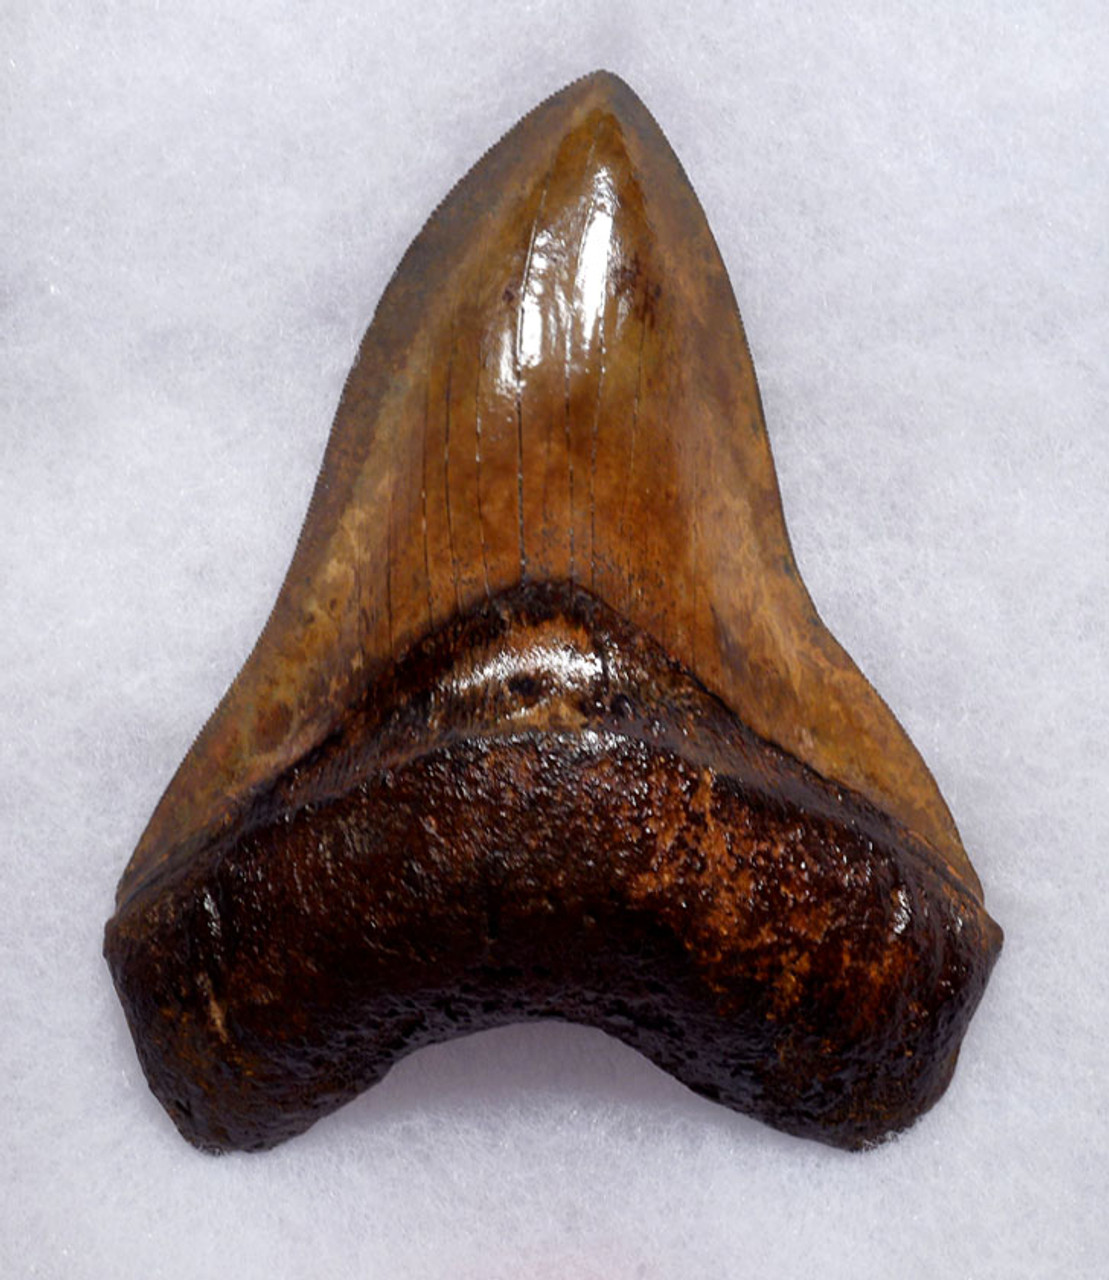 SH6-403 - FINEST COLLECTOR GRADE COPPER RED AND BROWN 5.25 INCH MEGALODON SHARK TOOTH